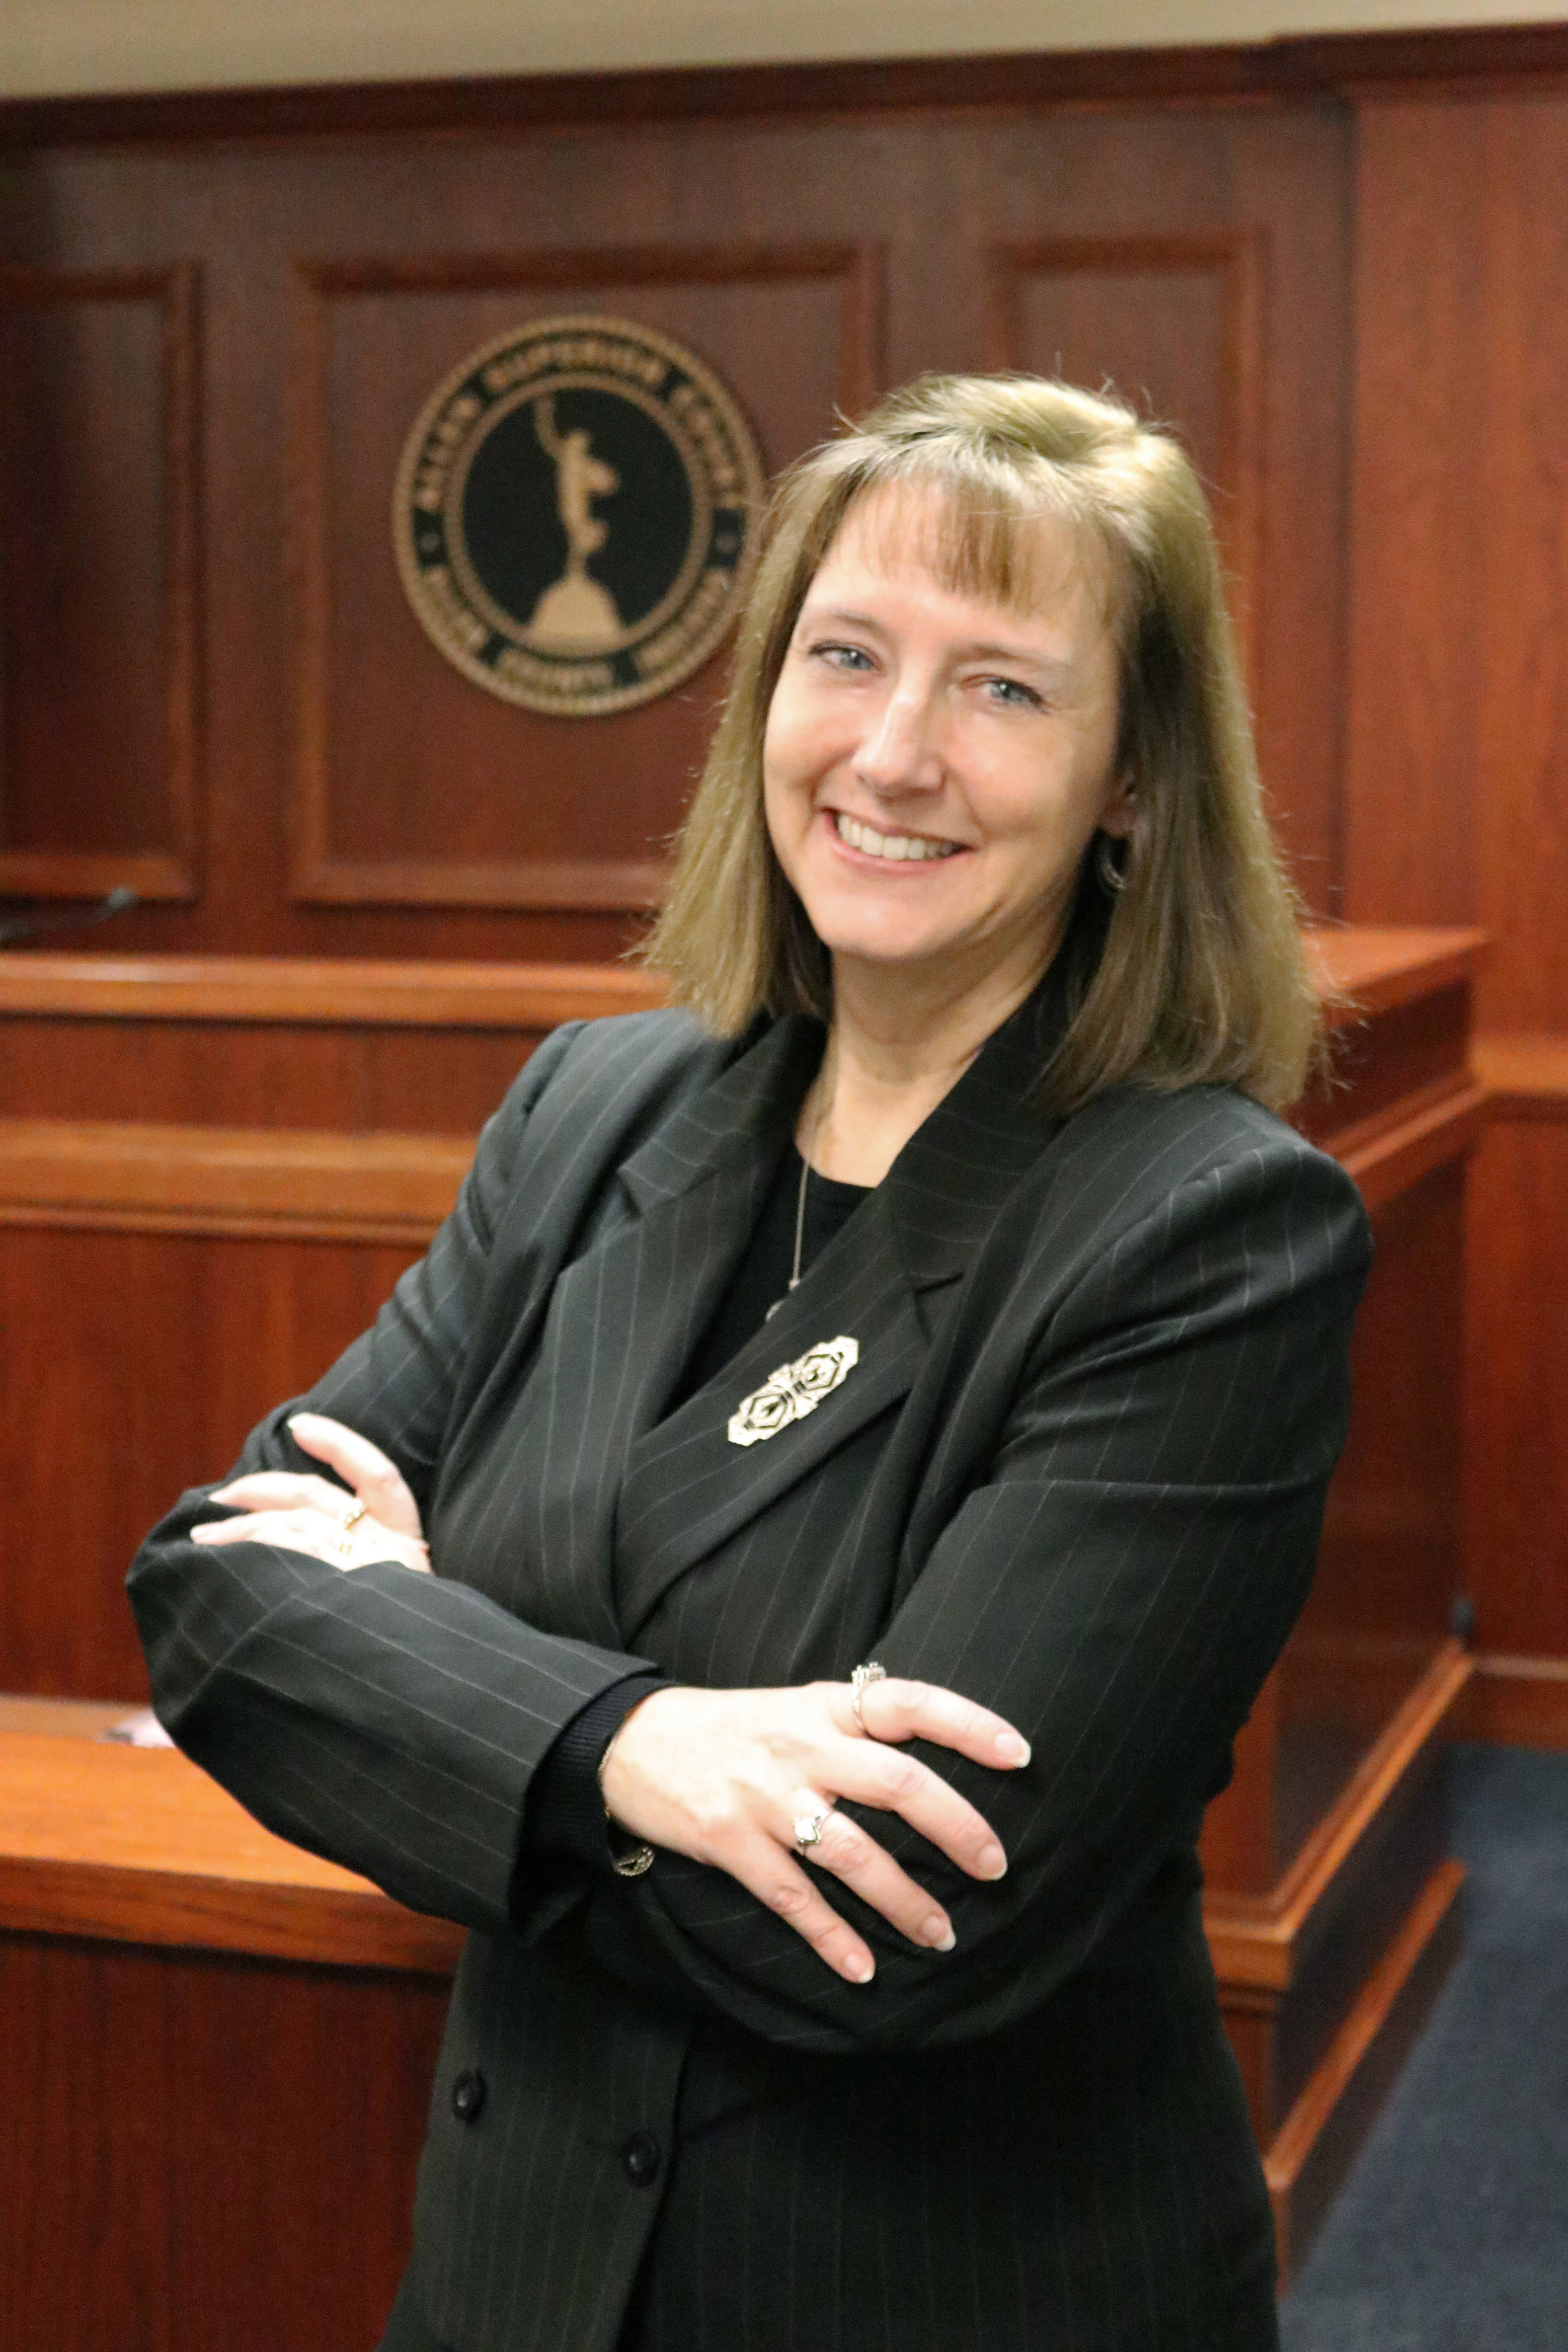 Magistrate Carolyn Foley